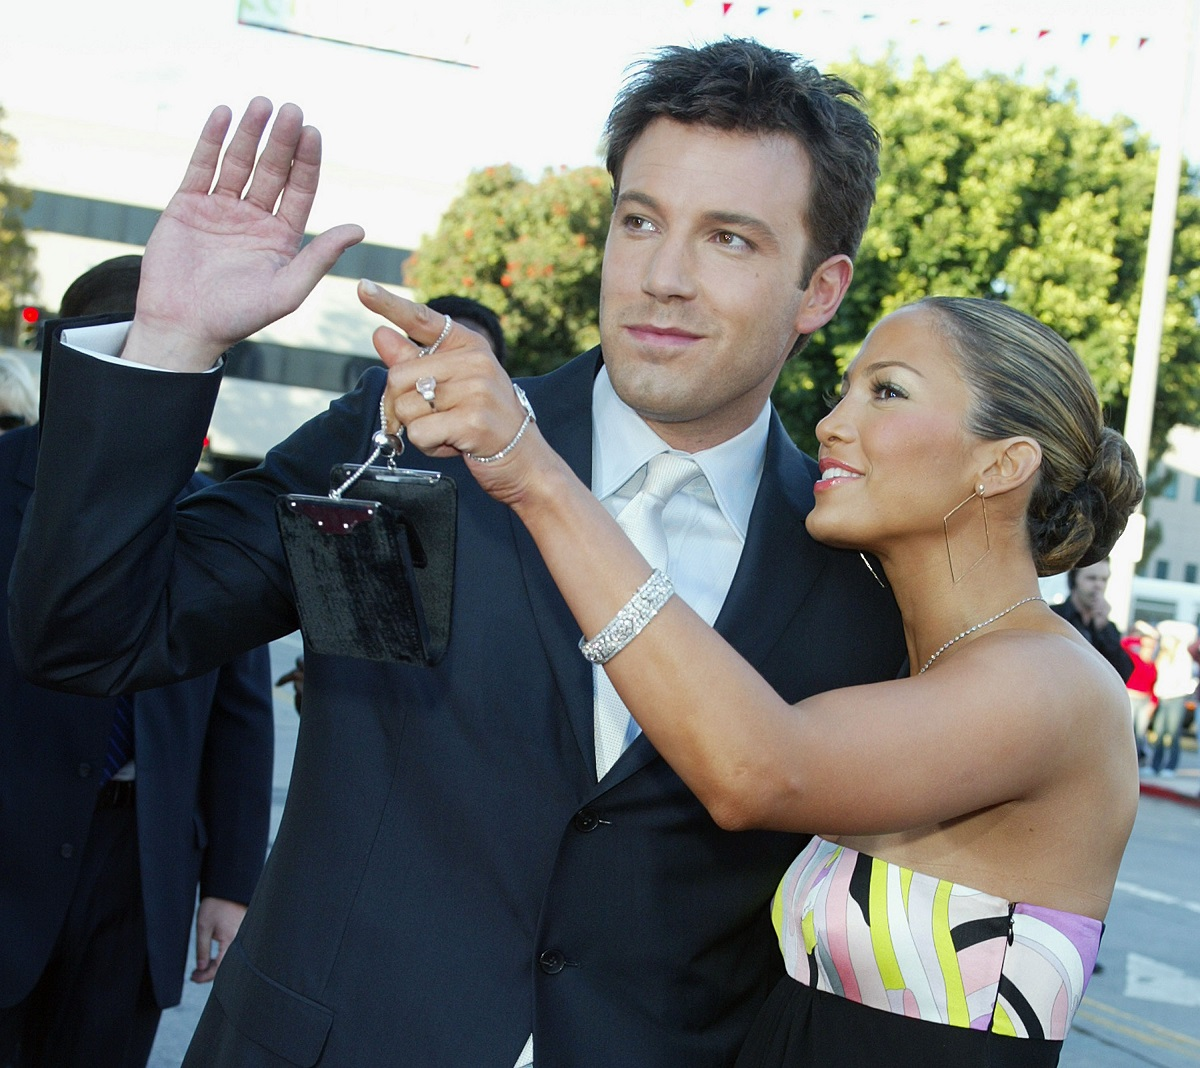 Jennifer Lopez (R) shows off her engagement ring with fiance Ben Affleck at the 'Daredevil' premiere in 2003.